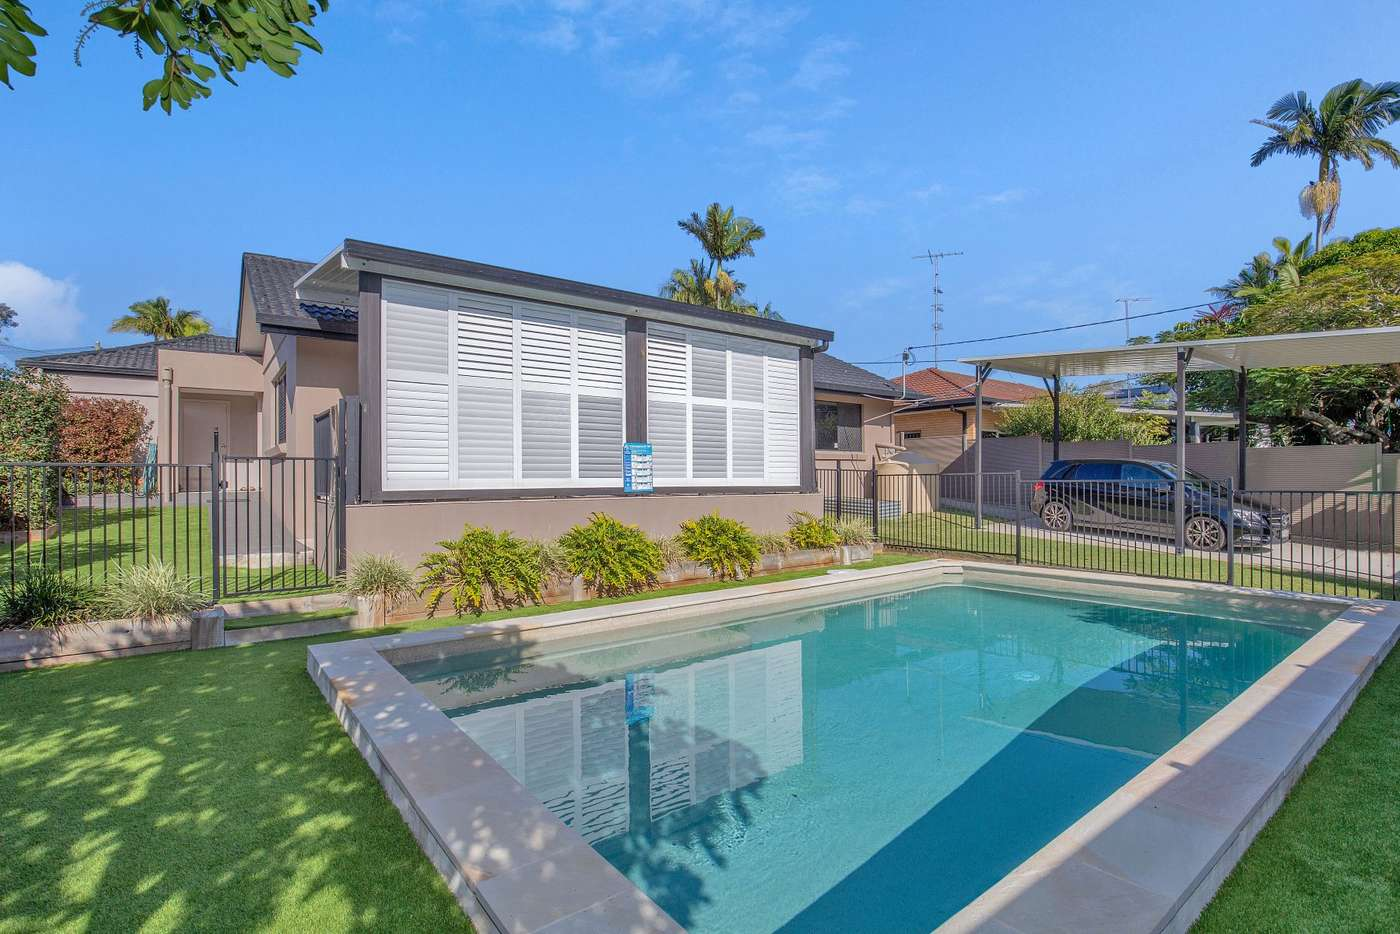 Main view of Homely house listing, 2 The Glade, Labrador QLD 4215